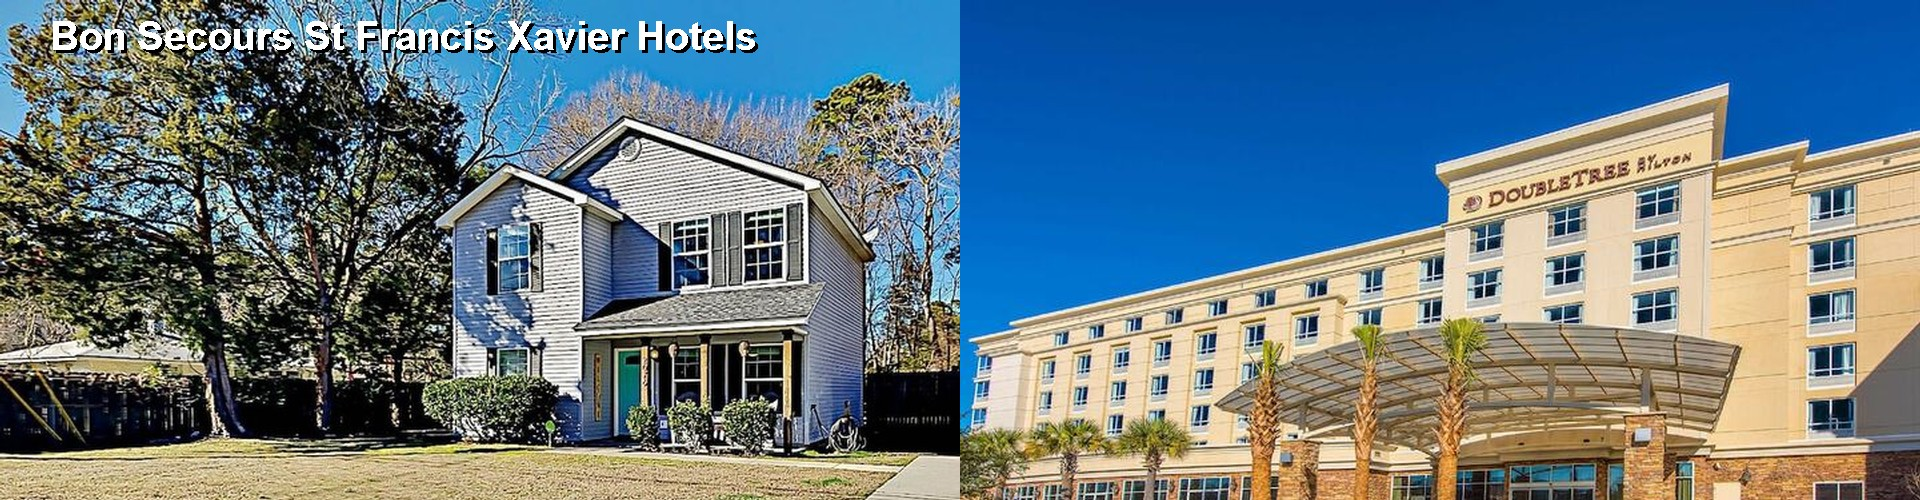 5 Best Hotels near Bon Secours St Francis Xavier